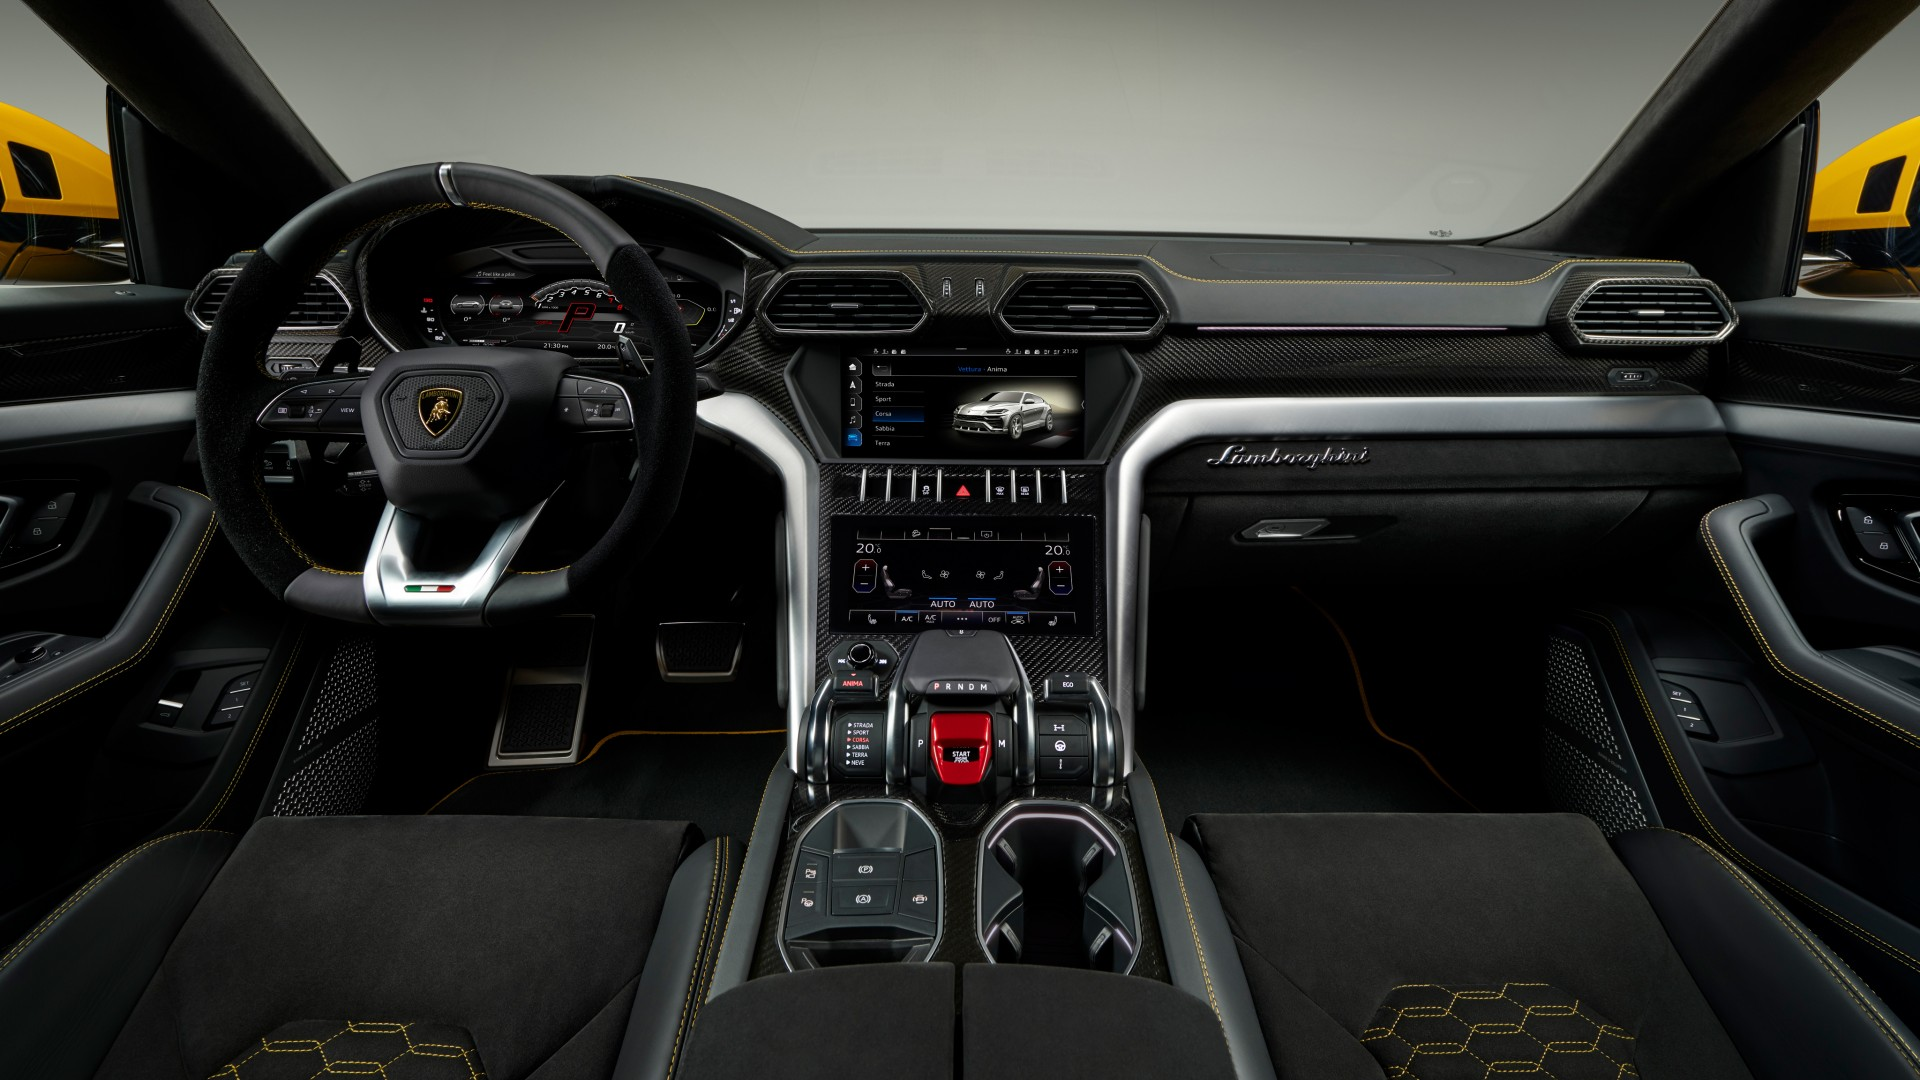 2018 Lamborghini Urus Interior 4k Wallpaper Hd Car